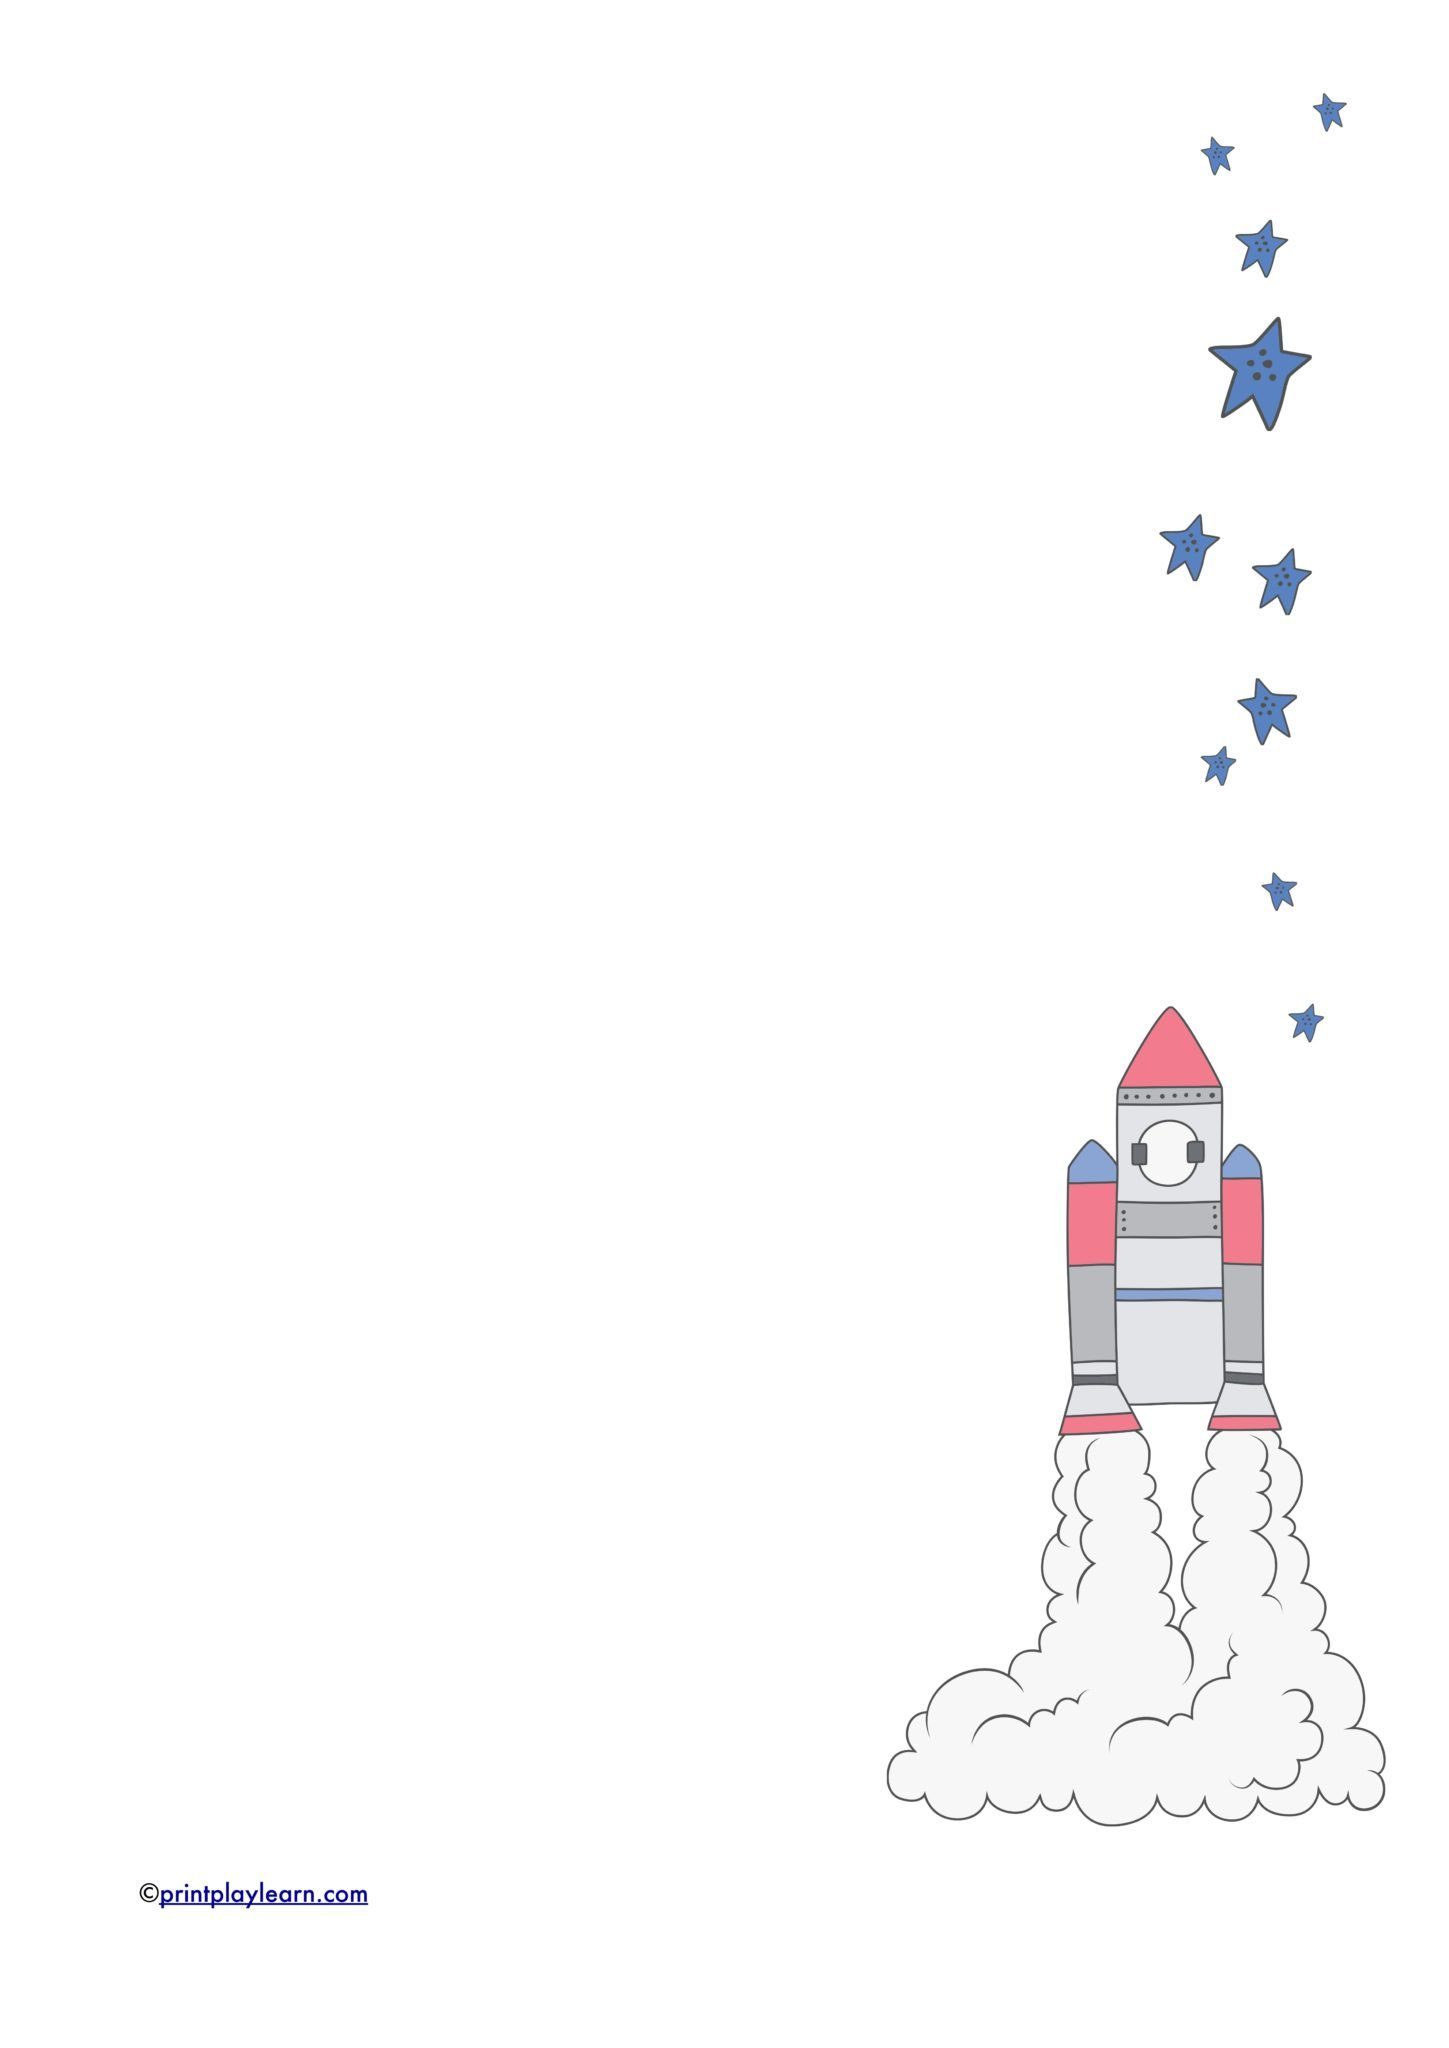 Rocket Writing Paper Plain Lined Printable Teaching Resources Print Play Learn Borders For Paper Writing Paper Printable Teaching Resources [ 2048 x 1449 Pixel ]